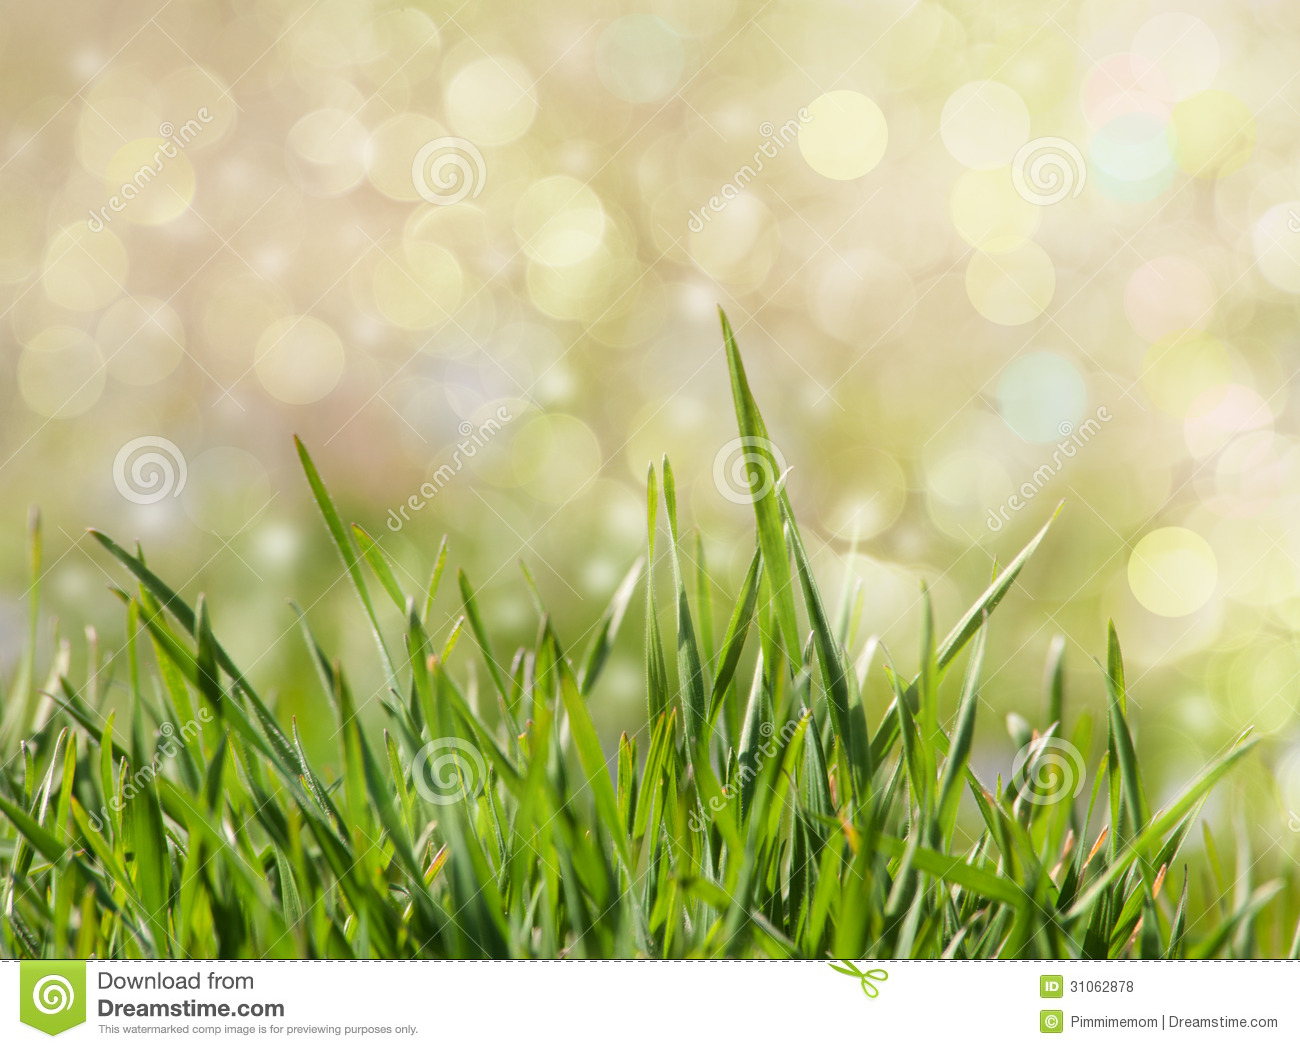 green grass background with dreamy bokeh stock photo - image of